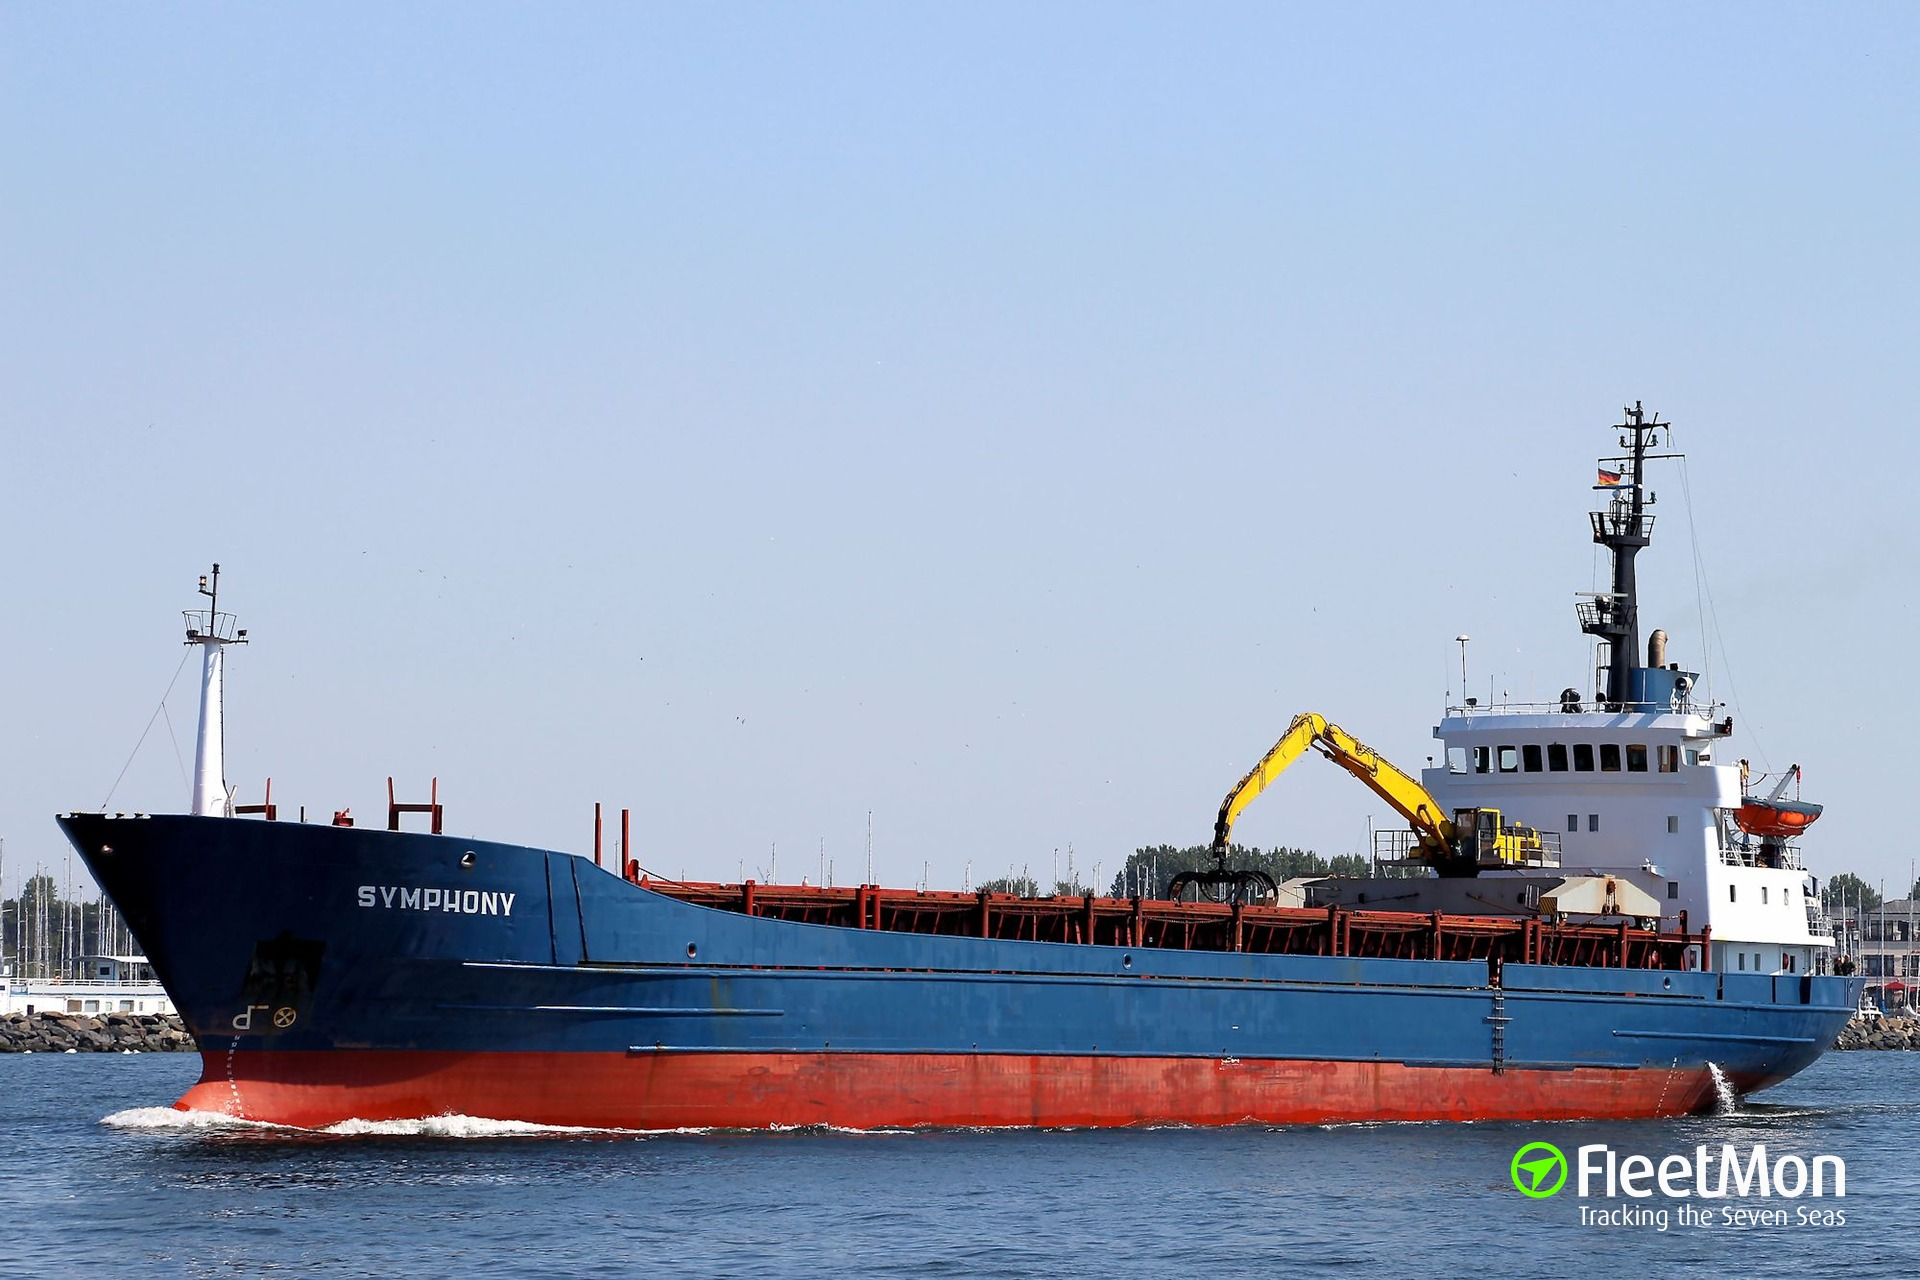 Freighter Symphony damaged port constructions, Master facing jail